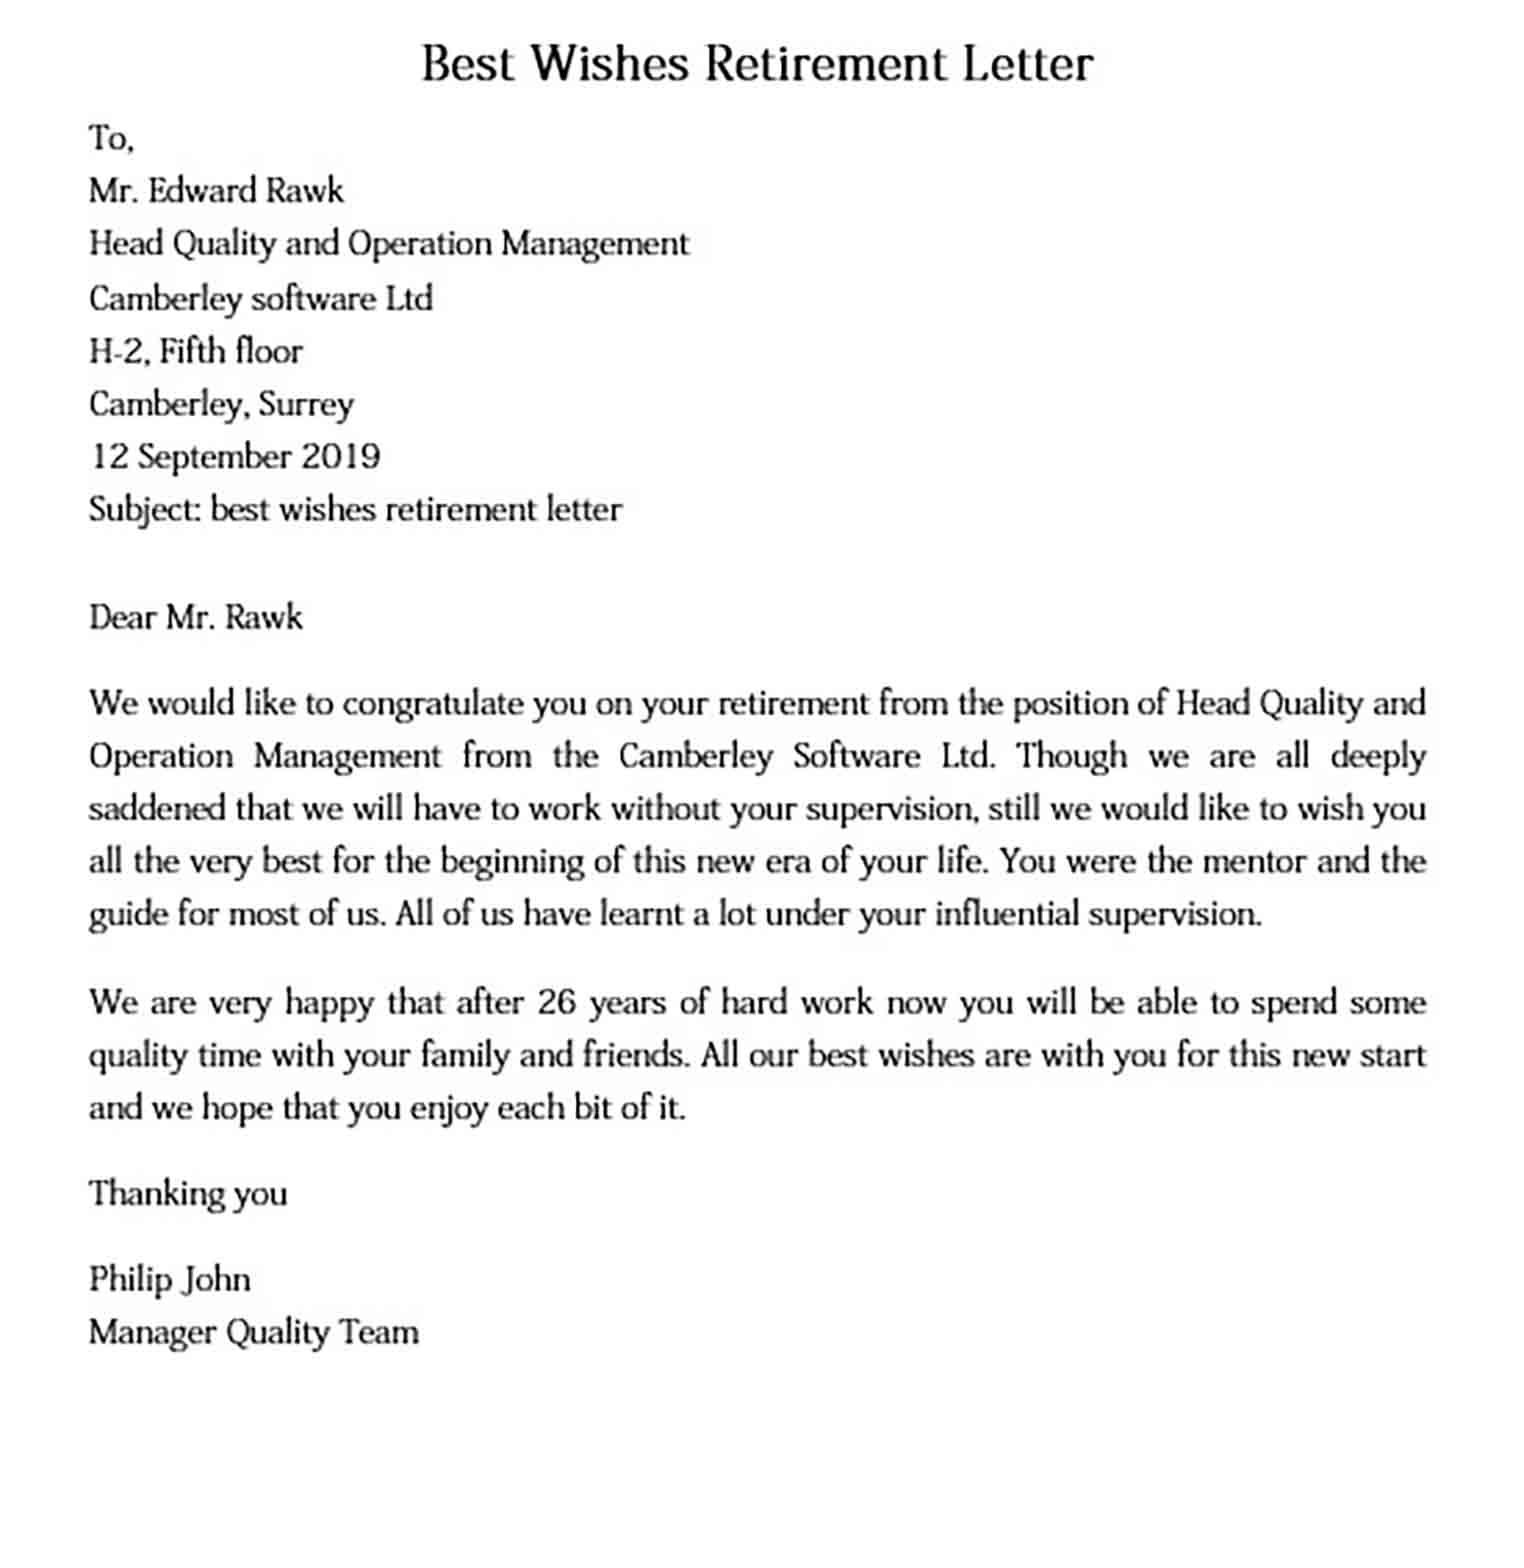 Retirement Letter And How To Make It Amazed The Reader Check More At Http Moussyusa Com Retirement Letter Operations Management Lettering Retirement